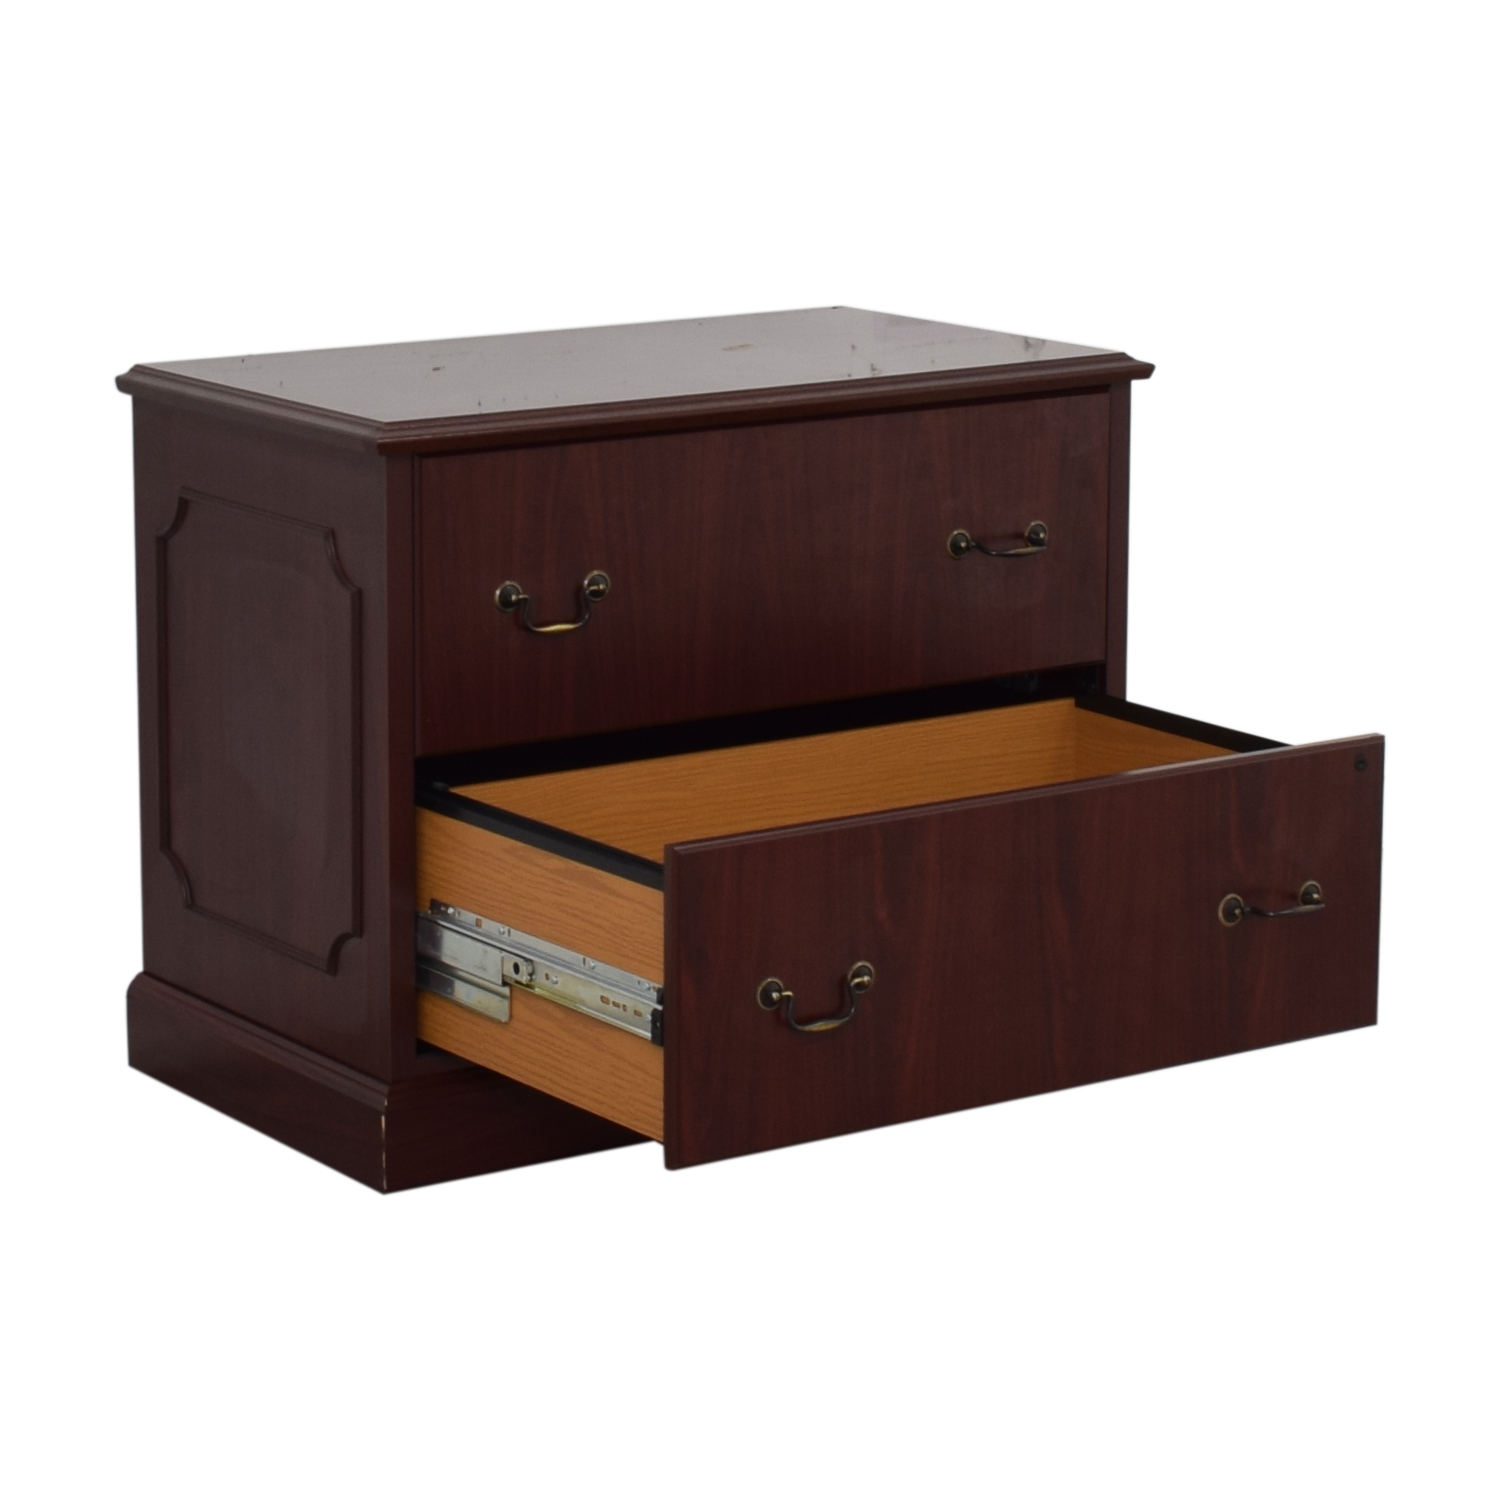 shop HON HON Wood Two-Drawer File Cabinets online